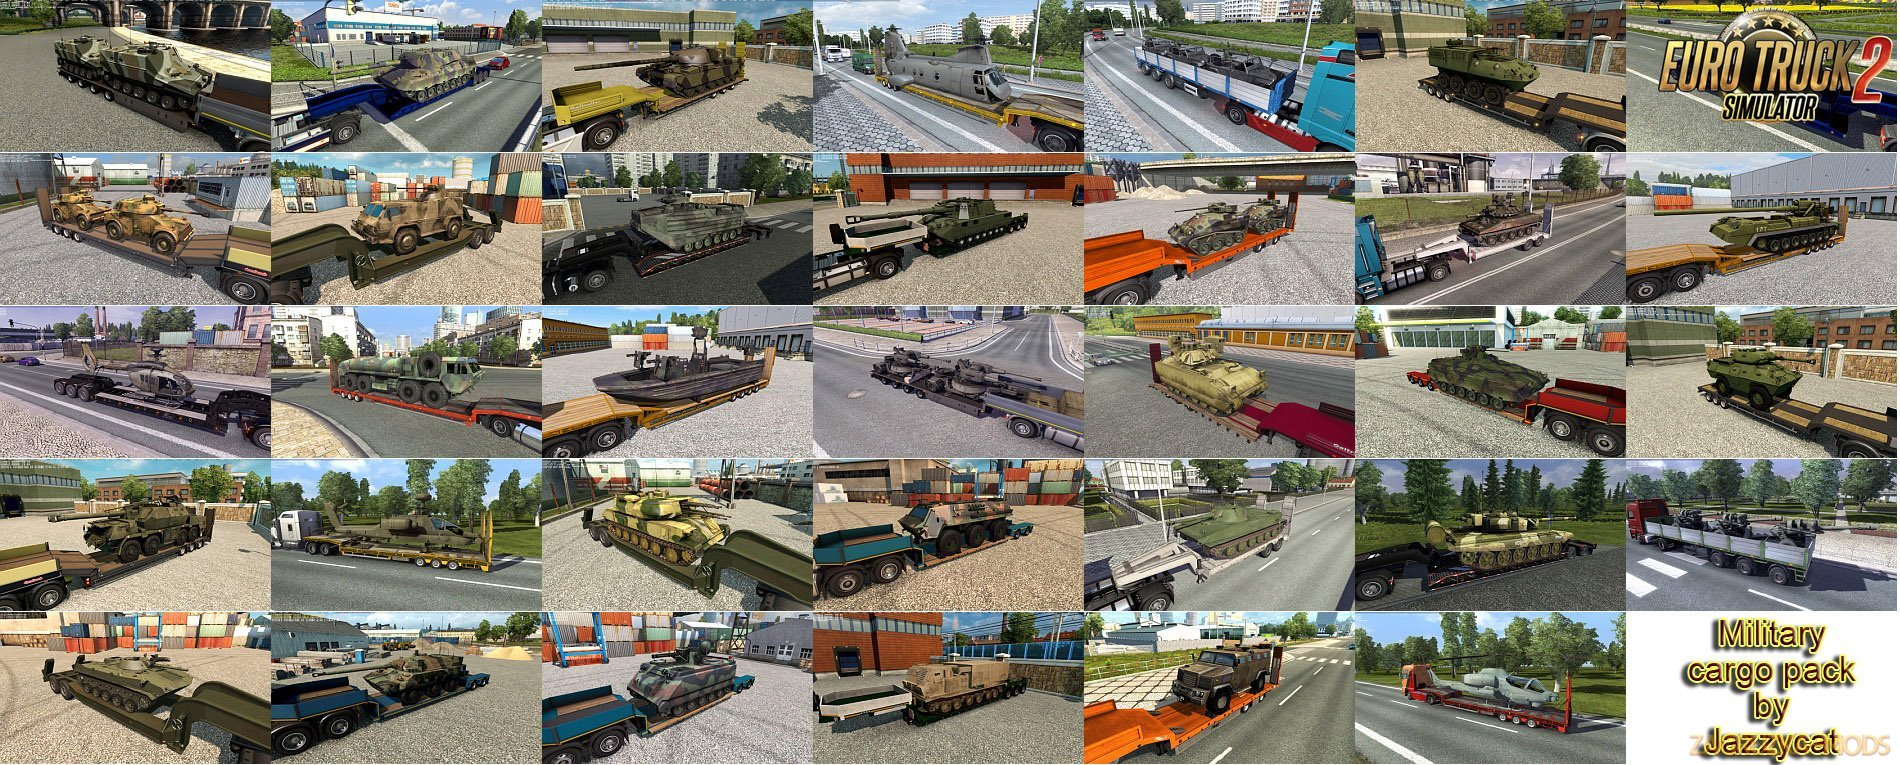 Military Cargo Pack v3.2 by Jazzycat